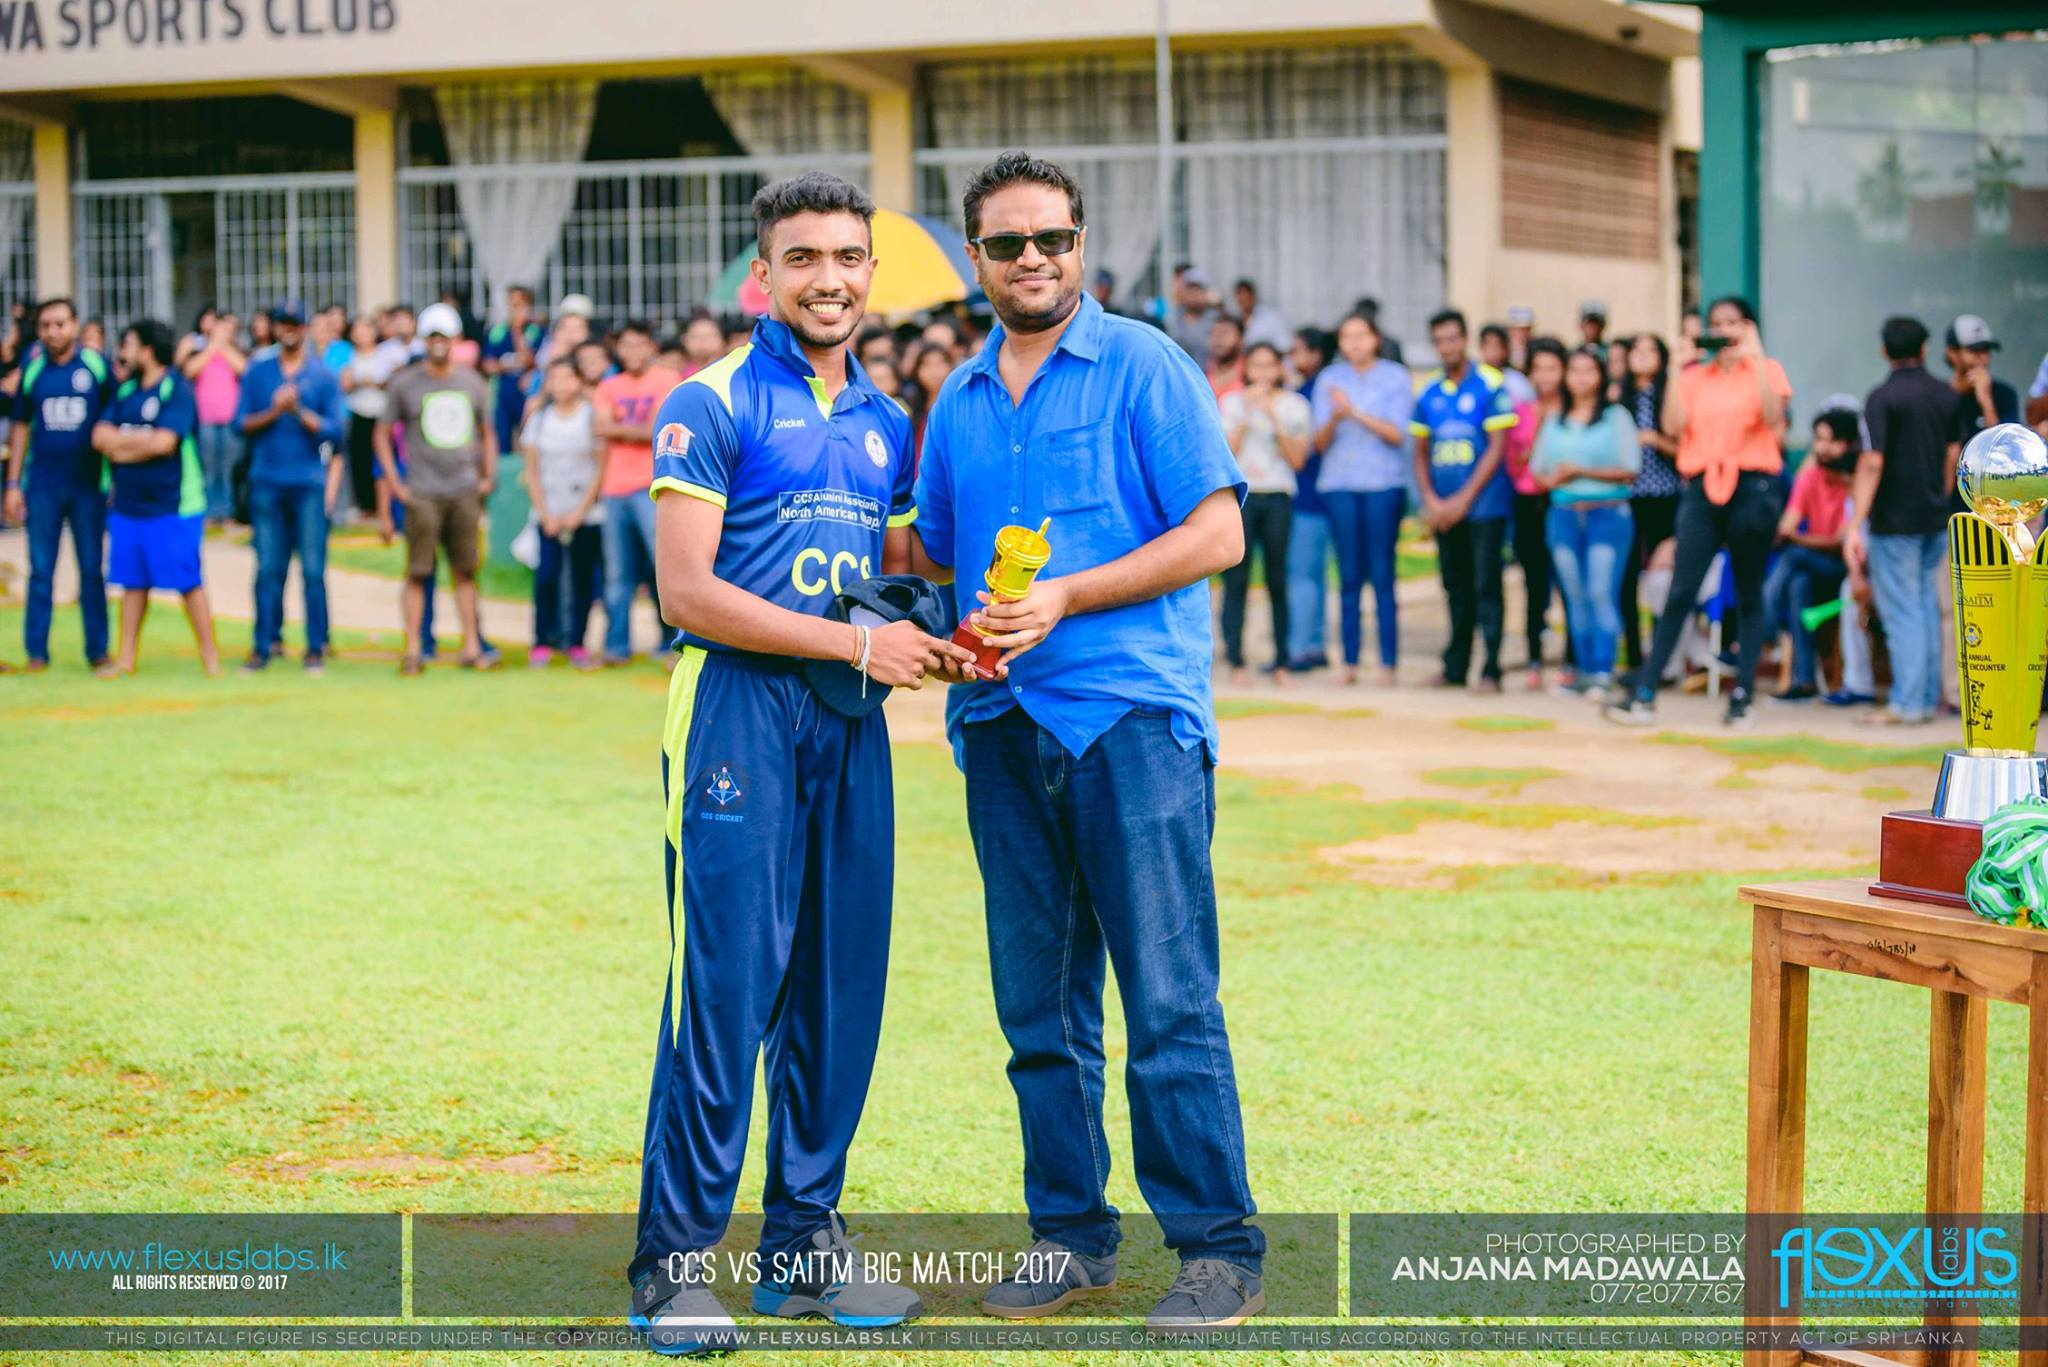 Dr. Amal Wageesha (Immediate Past President) @ CCS vs SAITM Big Match